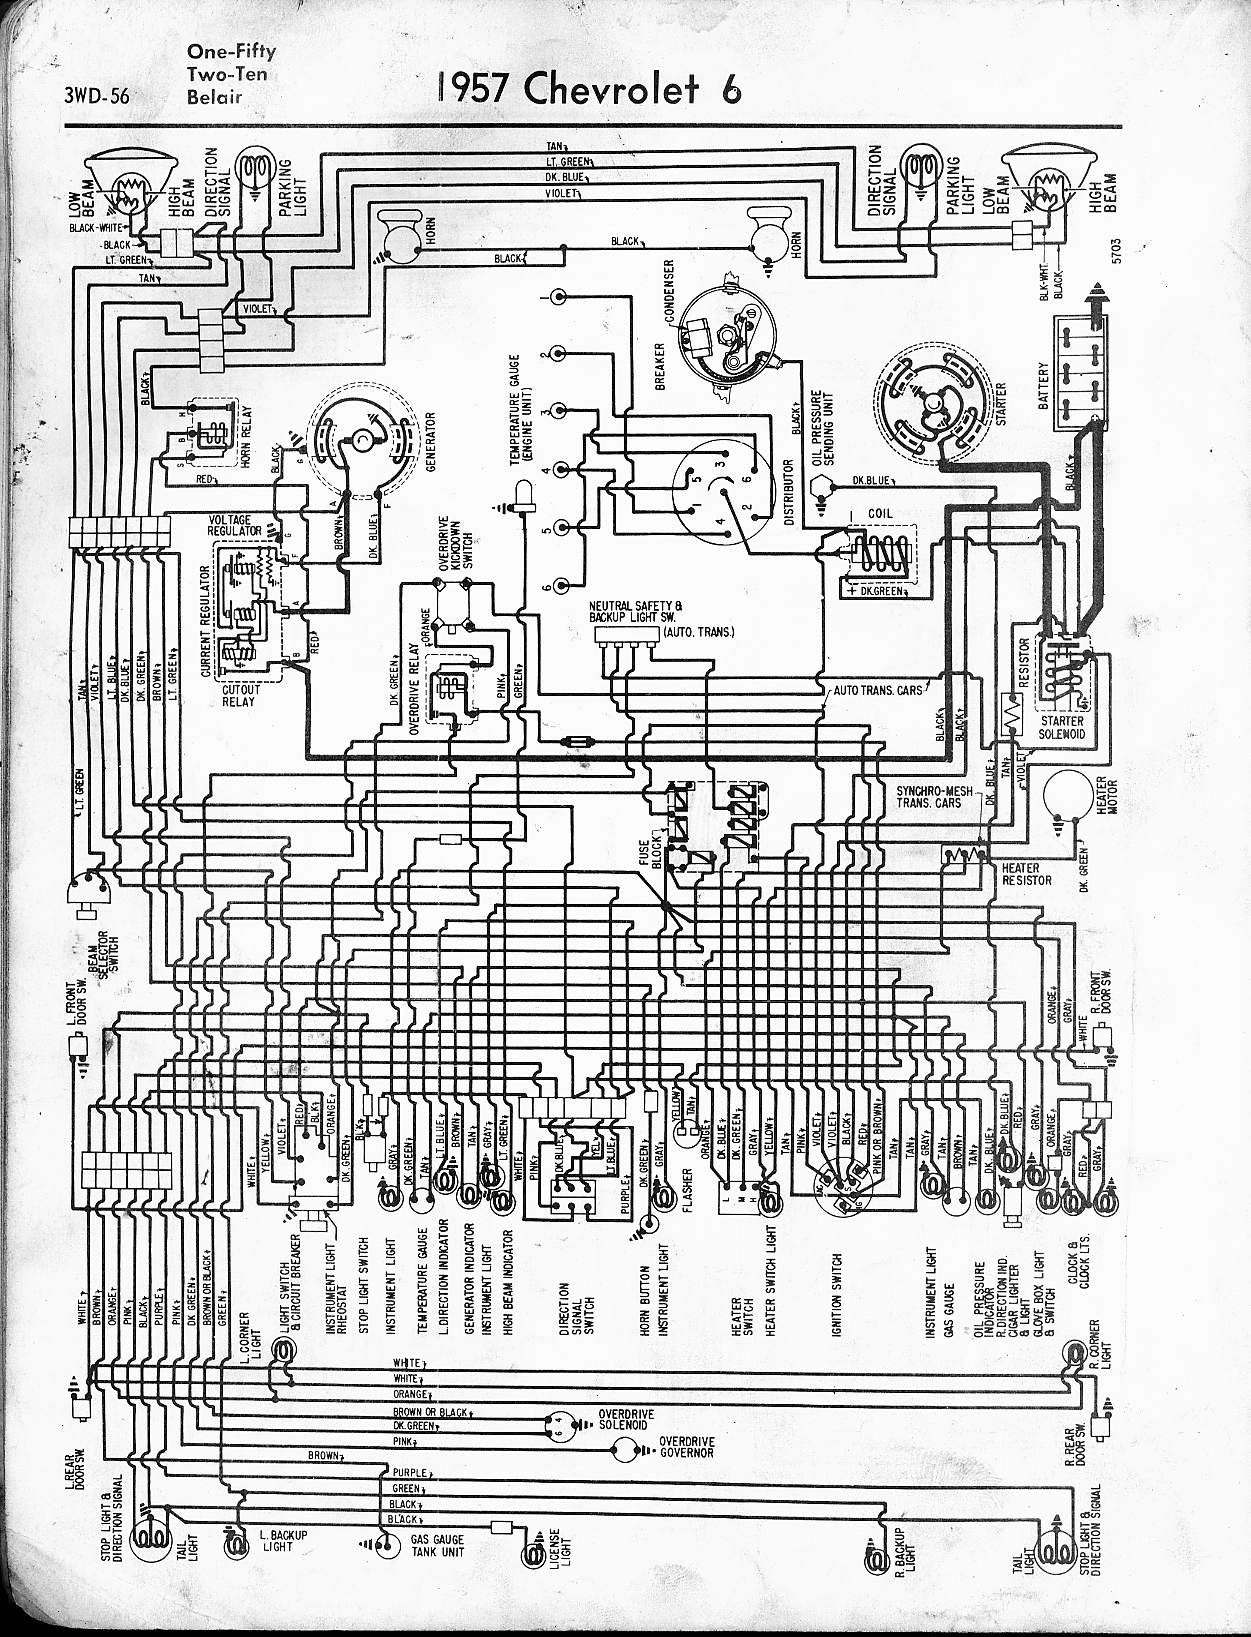 hight resolution of 1957 chevrolet bel air wiring diagram content resource of wiring 67 camaro wiring diagram 57 65